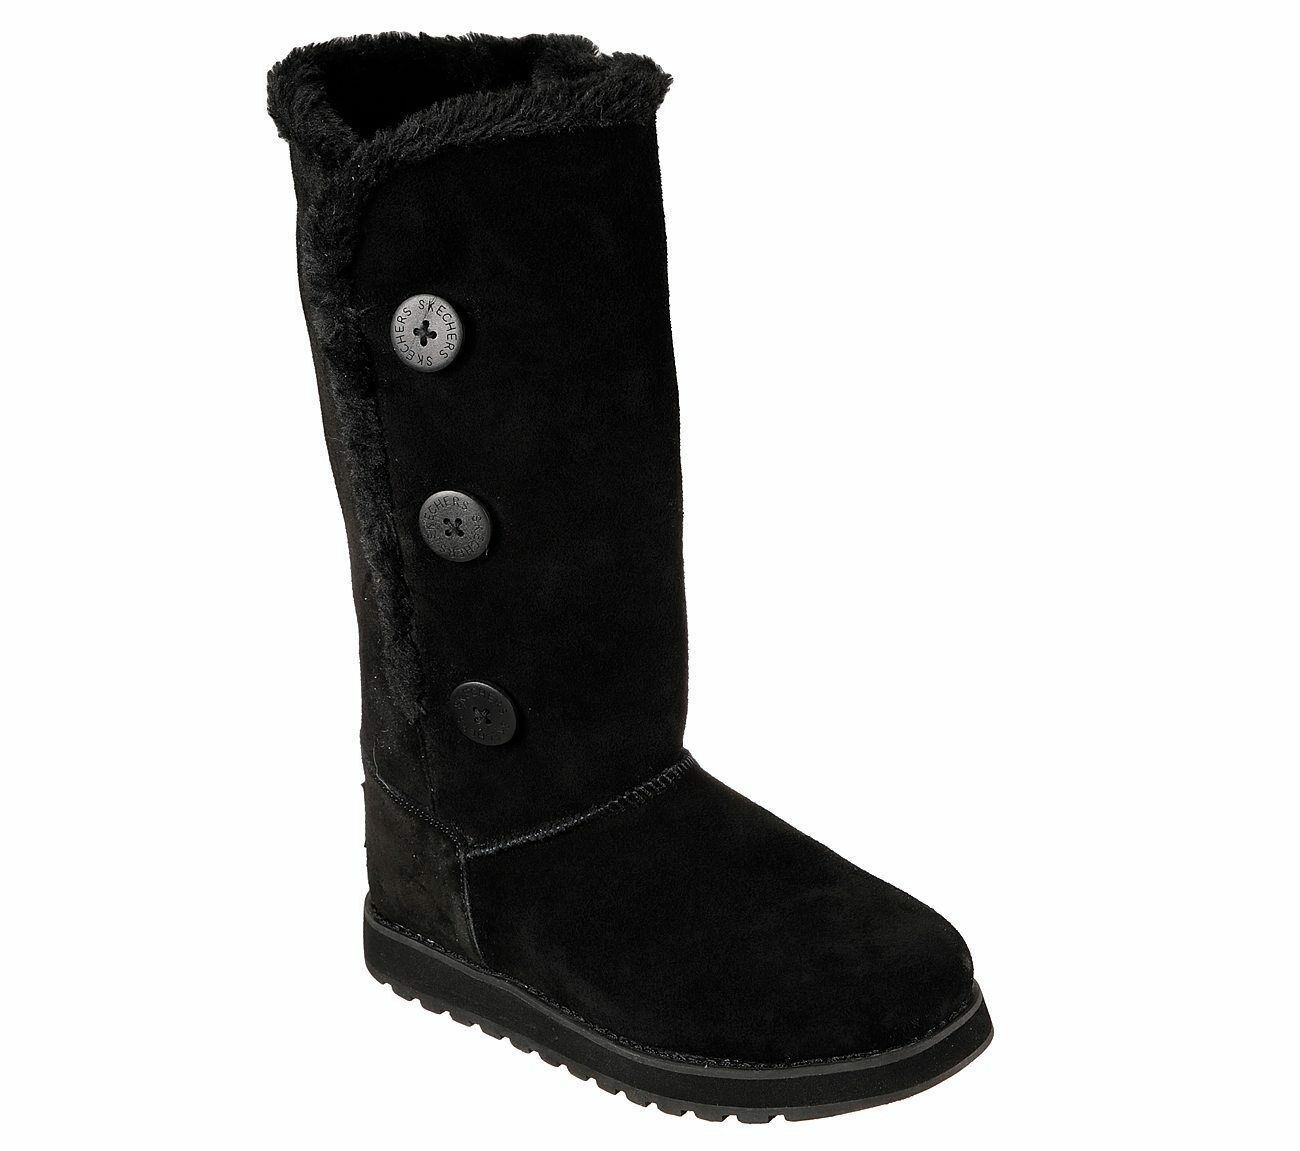 Skechers Keepsakes Winter Solstice Boots Memory Foam Tall Mid Calf Suede Womens